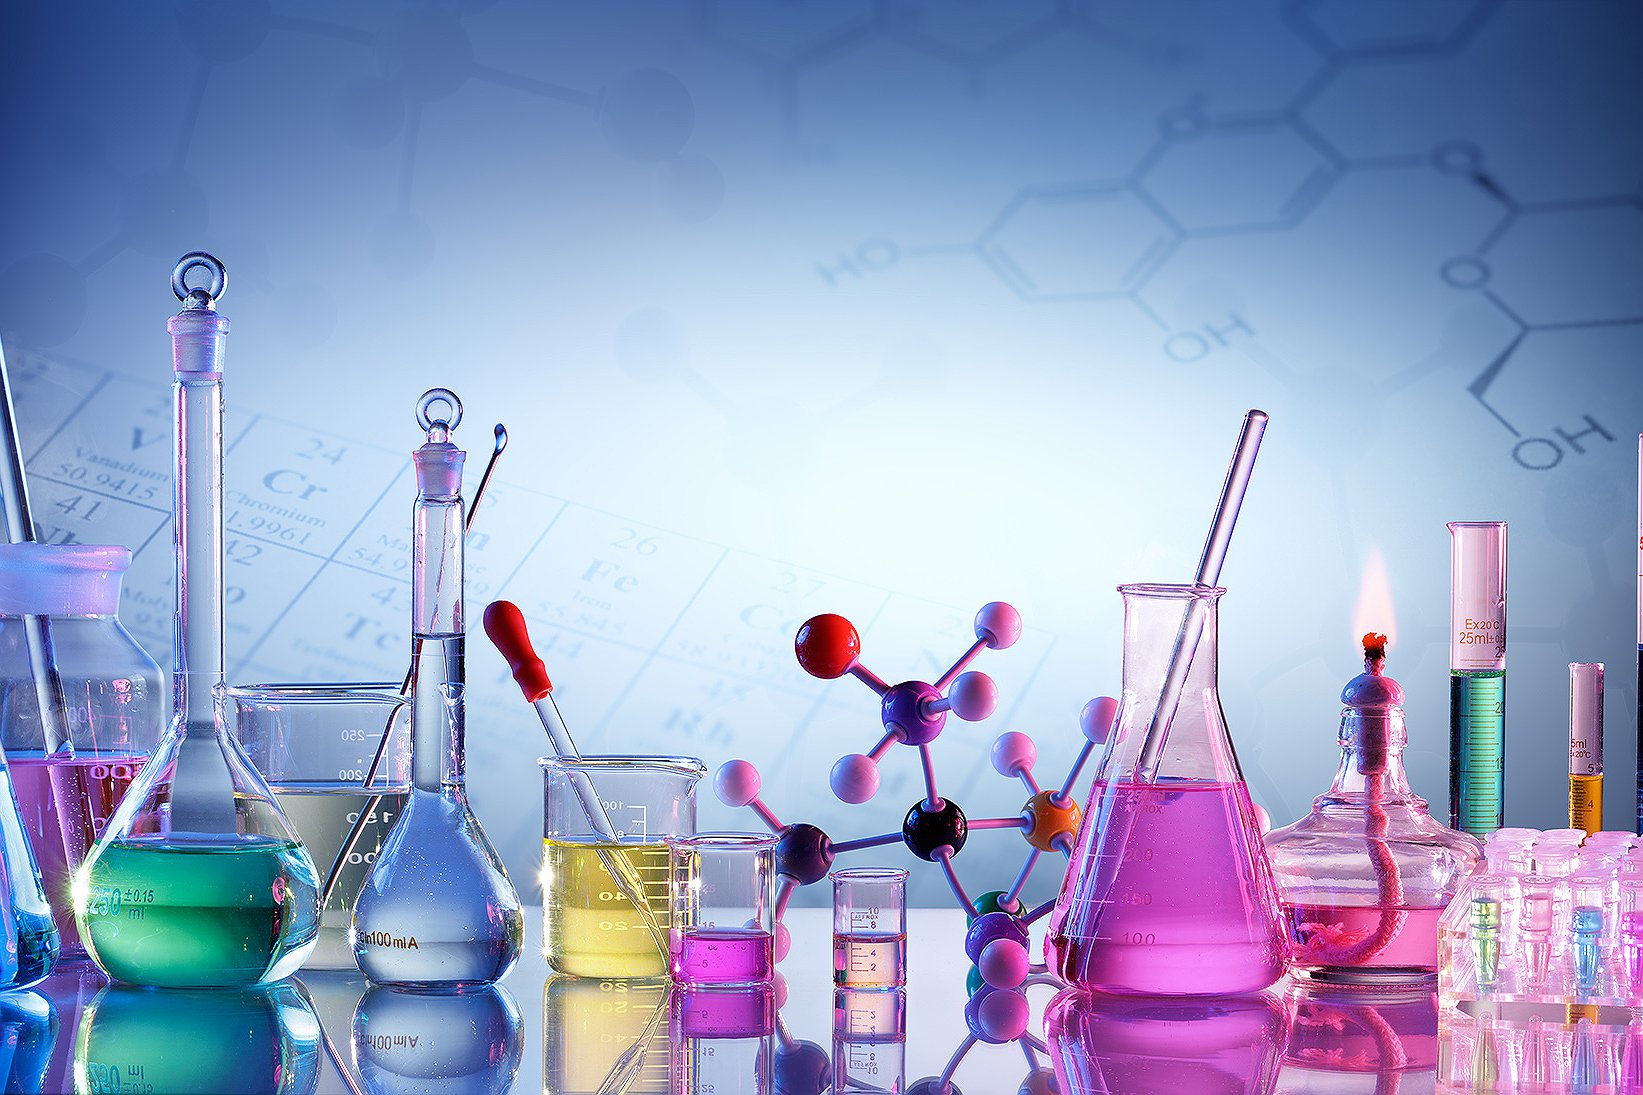 REGISTRATION EVALUATION AUTHORISATION OF CHEMICALS